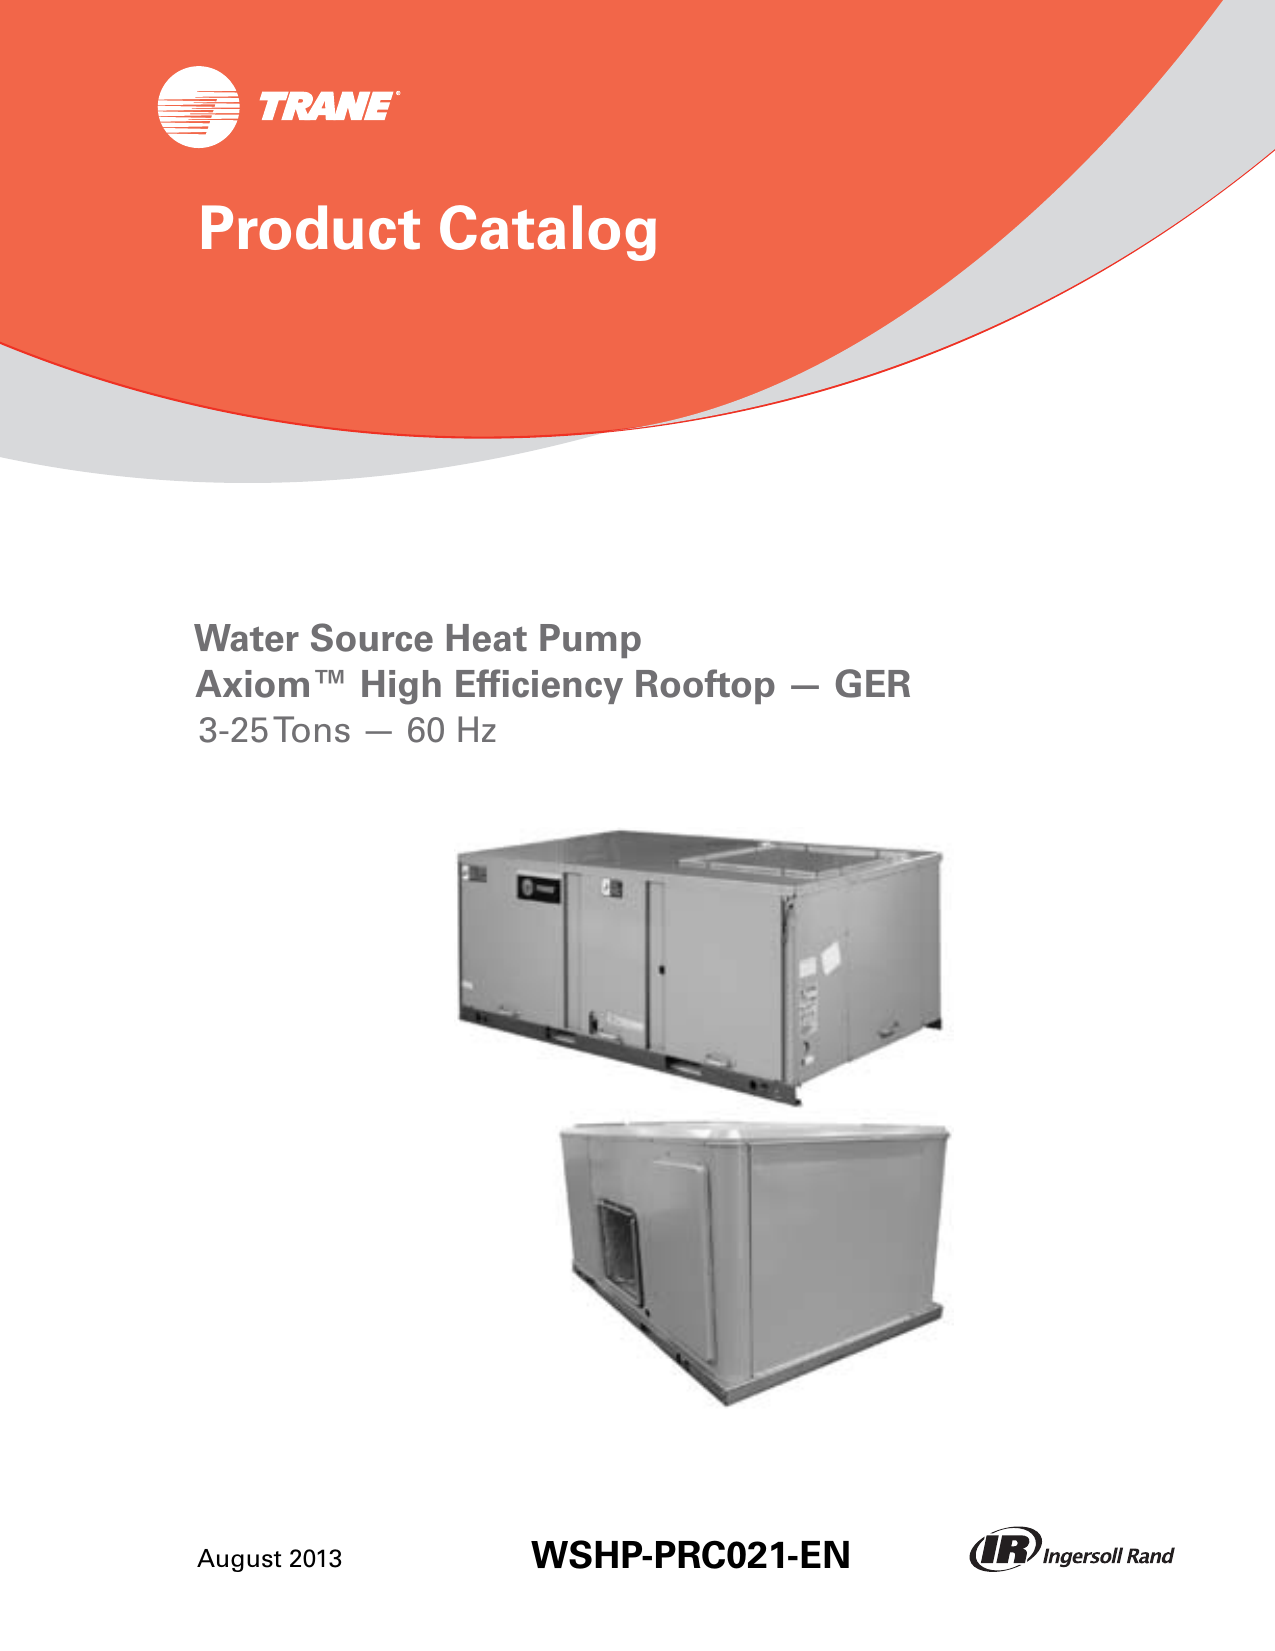 Makeup Air Fan together with Heat Pump Wiring Diagram Schematic Also Defrost Timer likewise Trane Wiring Diagrams Hvac as well Trane Economizer Wiring Diagrams moreover Trane Heat Strip Wiring Diagram. on trane mercial wiring diagrams